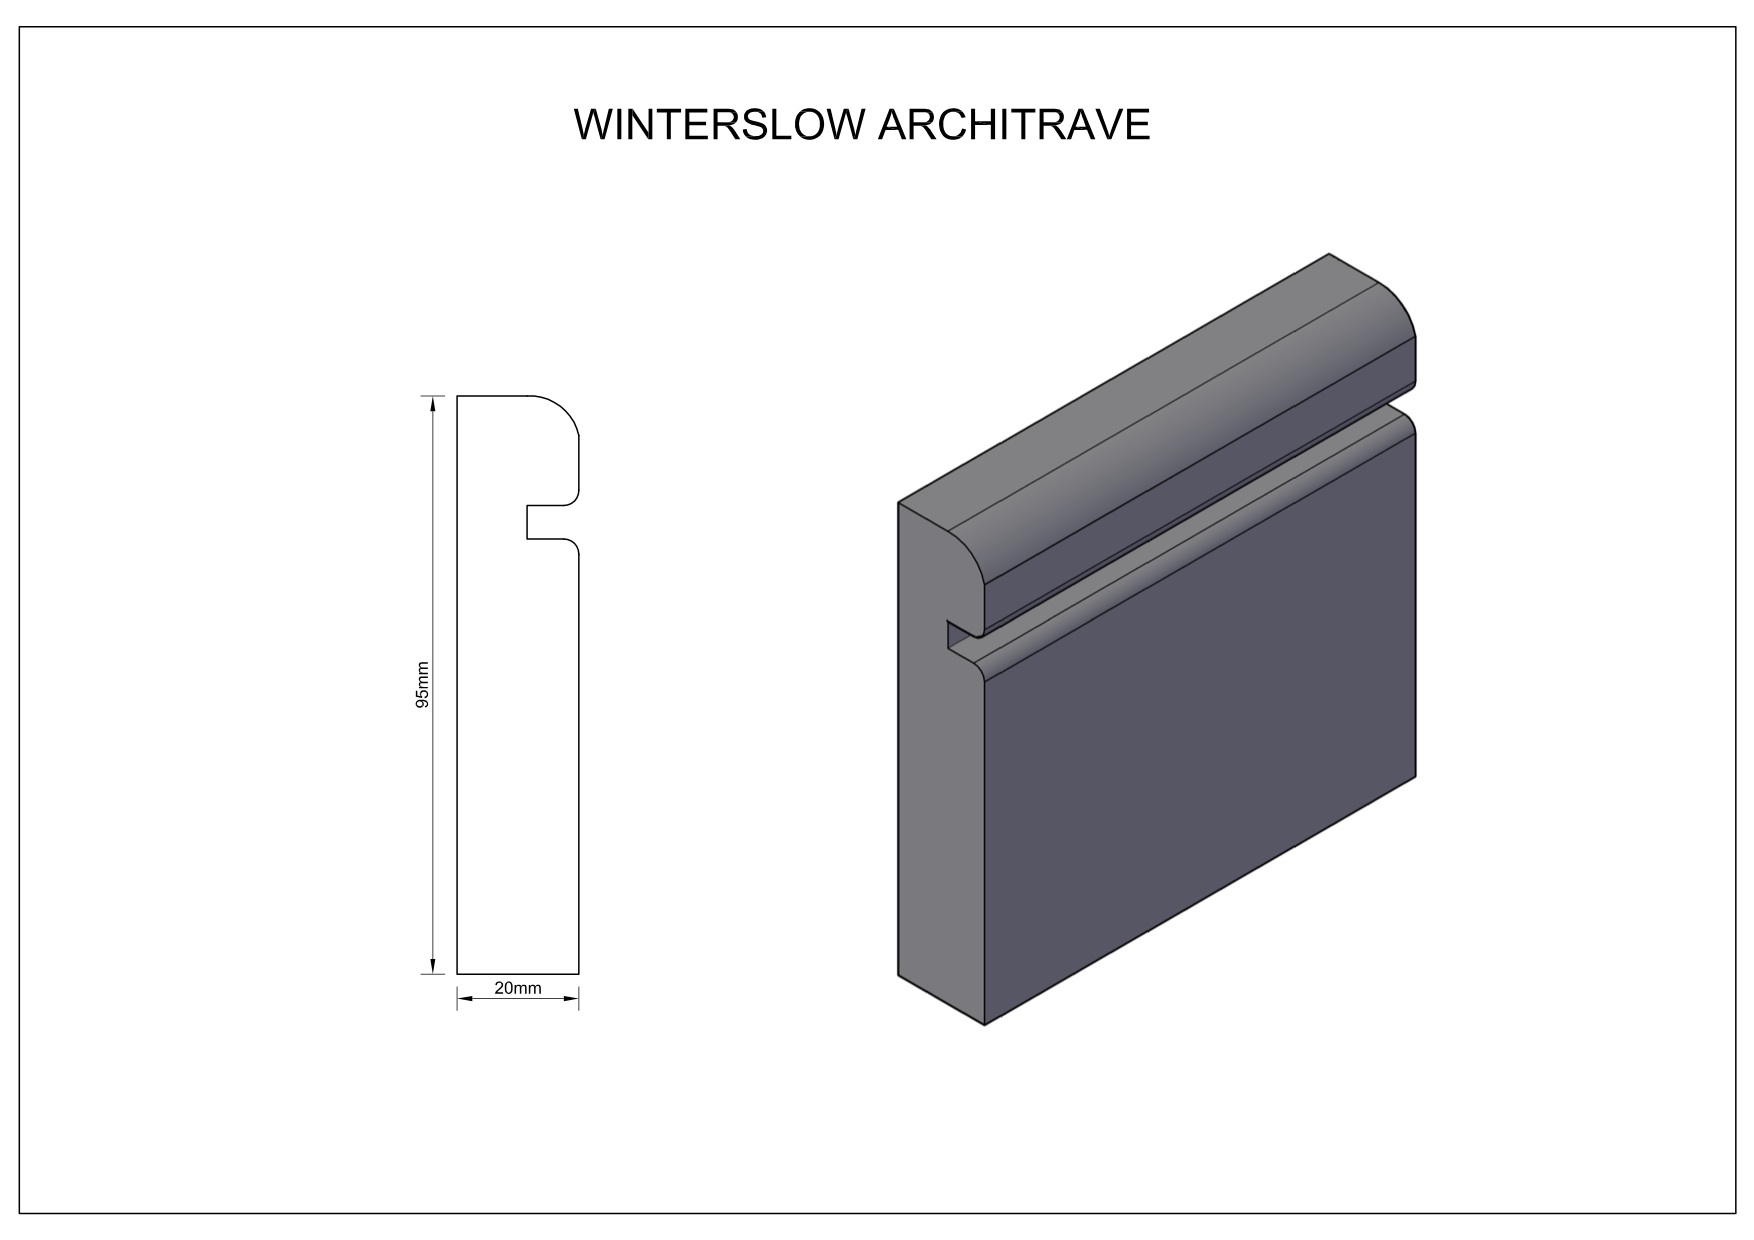 Winterslow-Architrave large